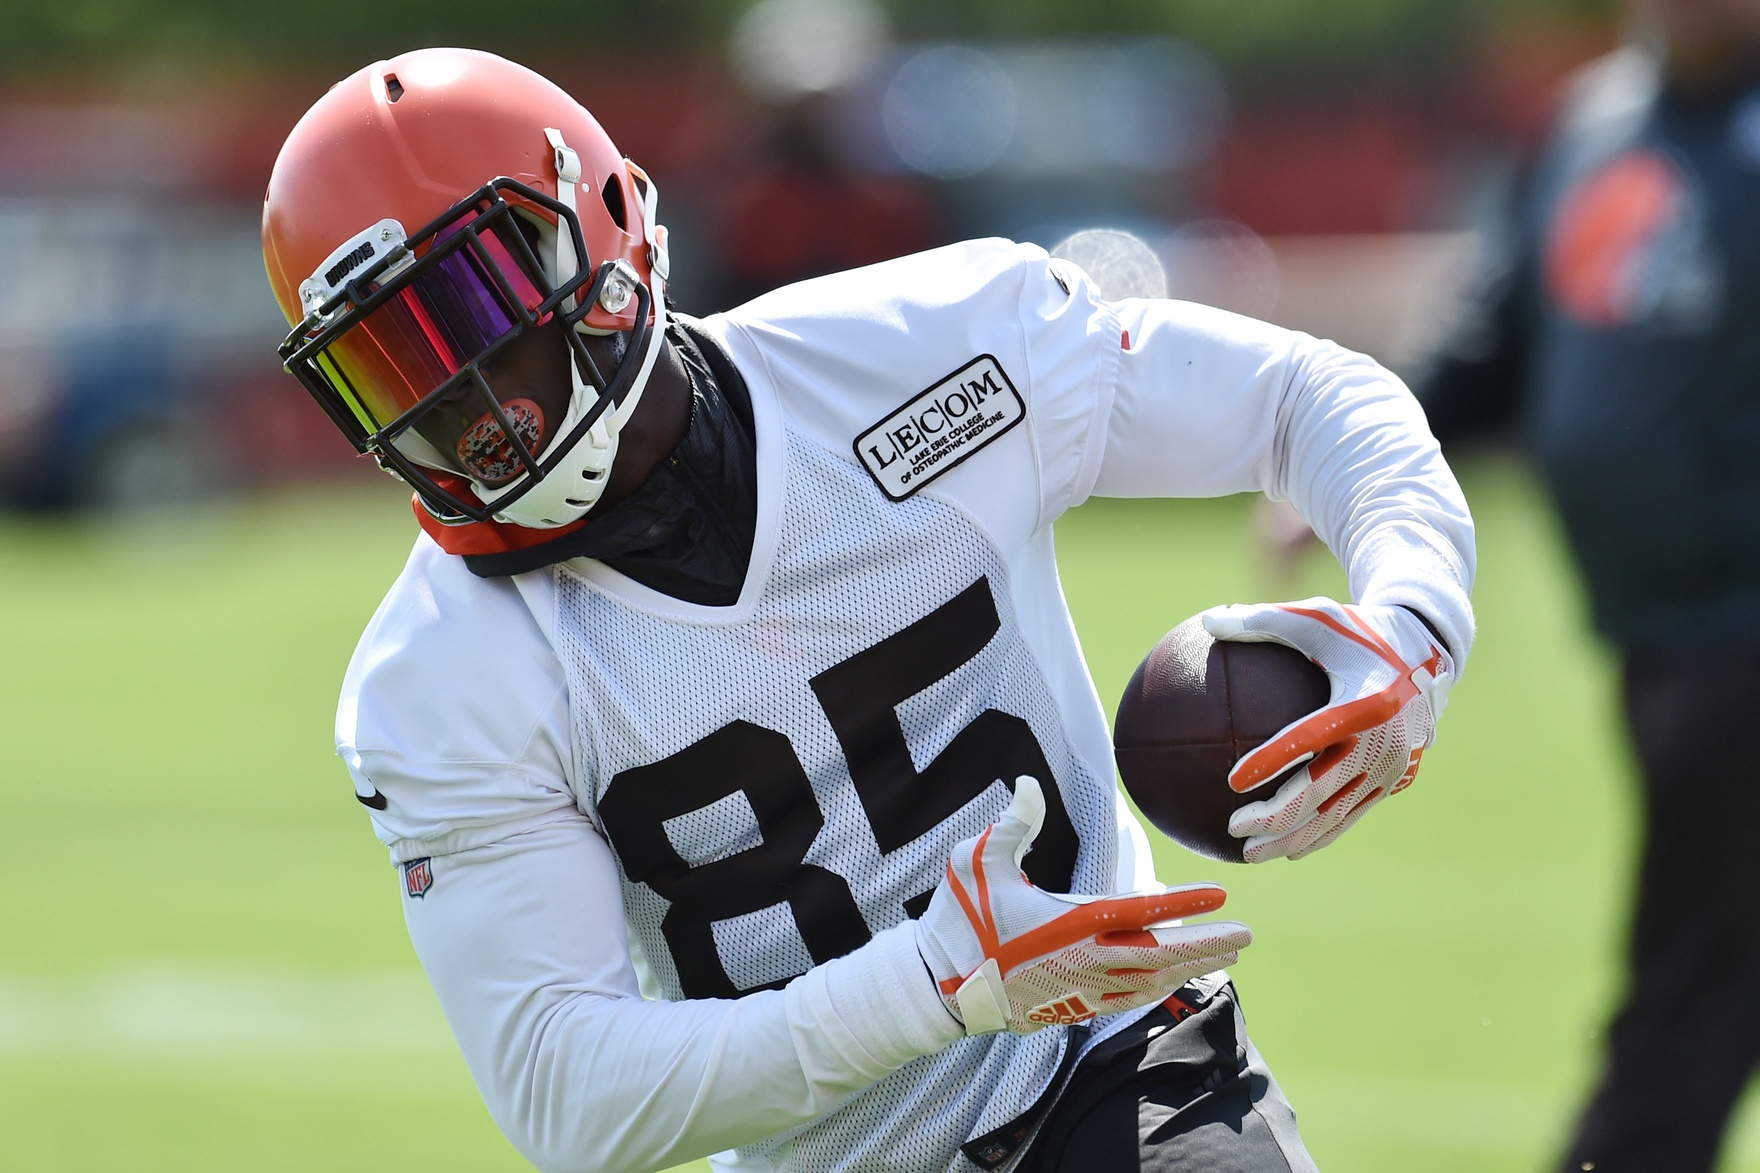 A promising young receiving corps has the Cleveland Browns primed for 2019 and beyond